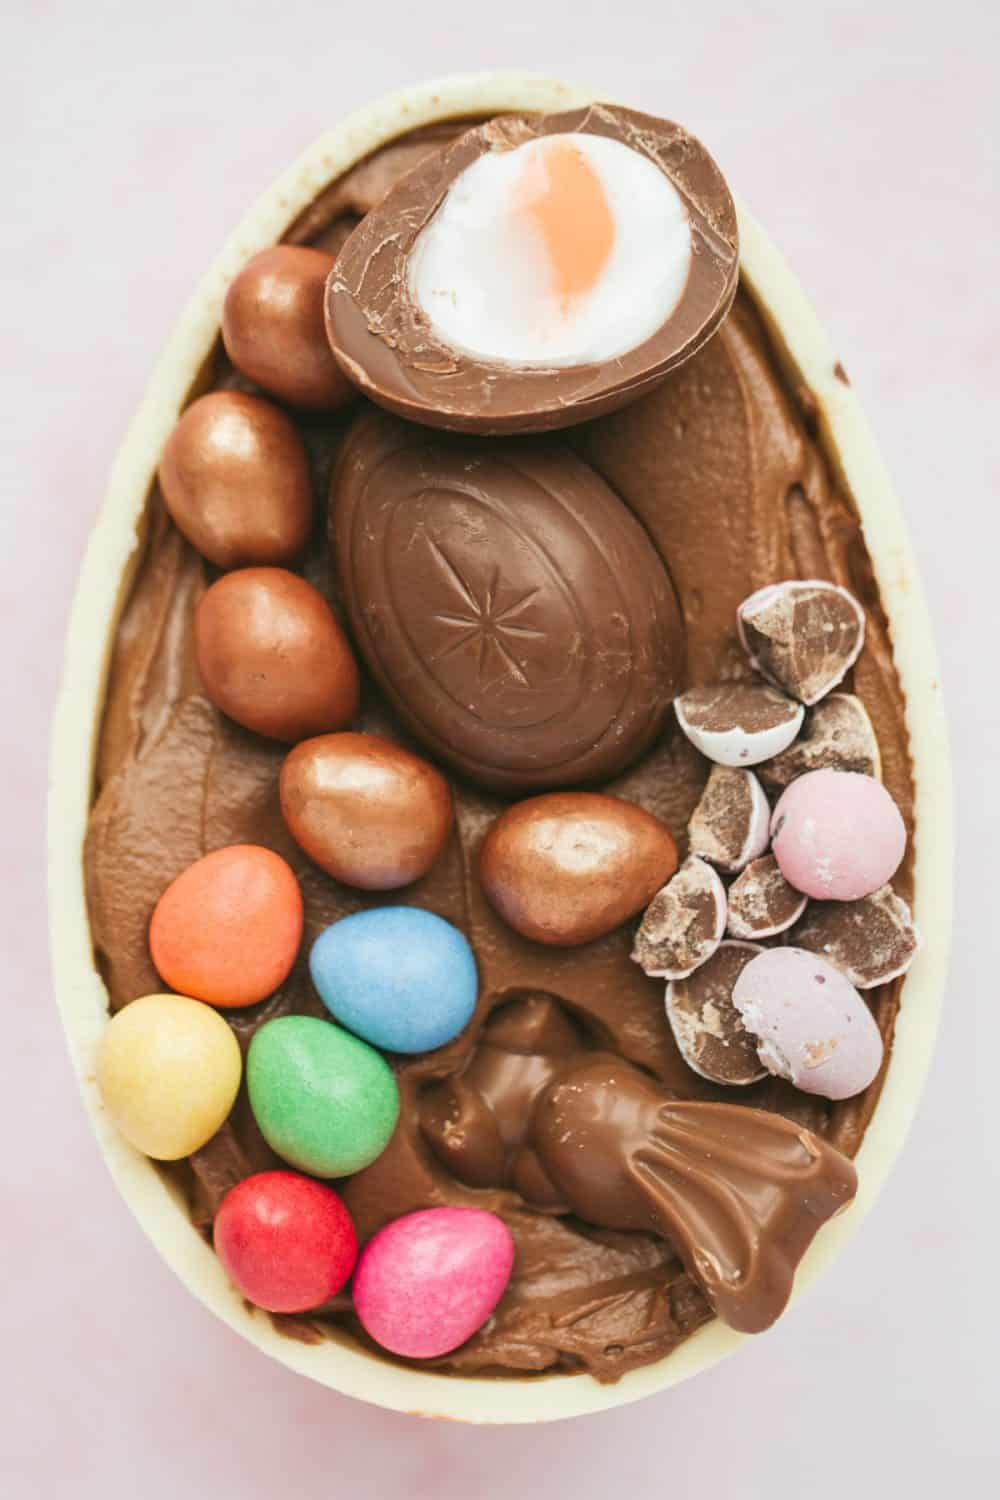 A white chocolate egg filled with chocolate cheesecake and colourful mini eggs.